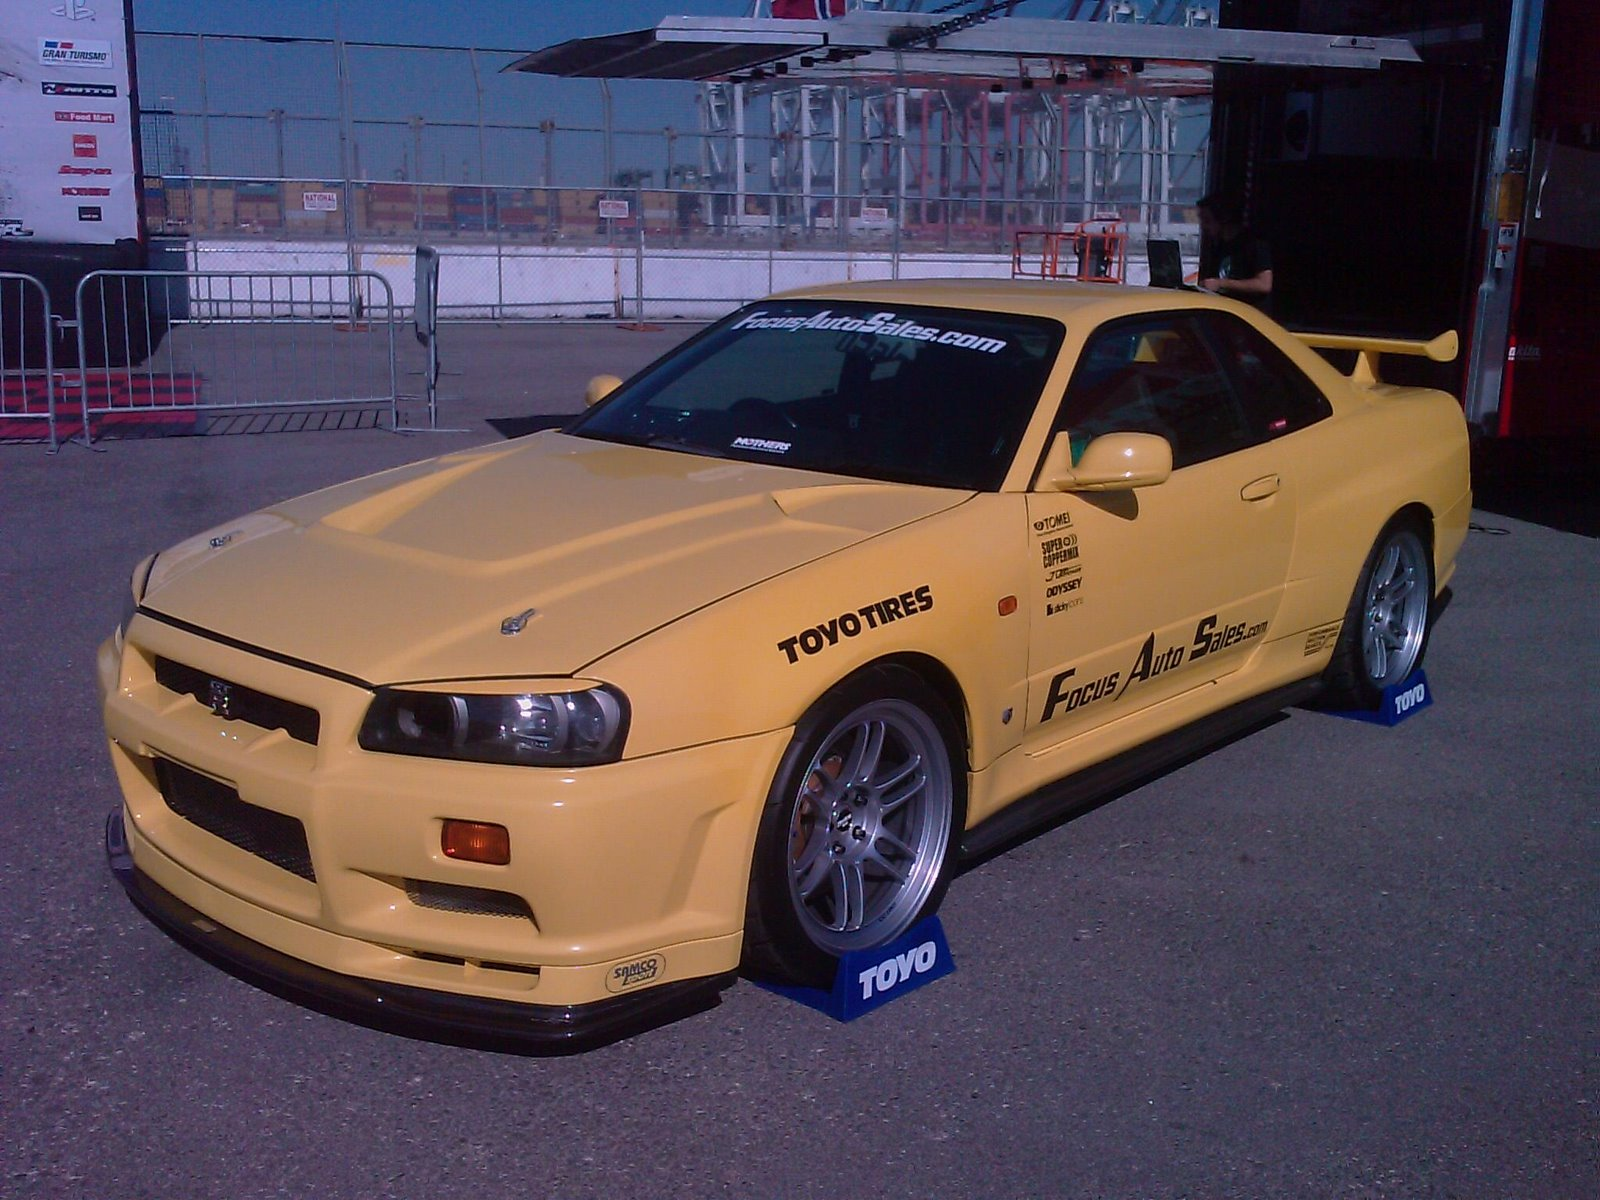 Nissan Gtr R34 For Sale >> R34 Nissan Skyline Gt R For Sale In The Usa Nissan Skyline Gt R S